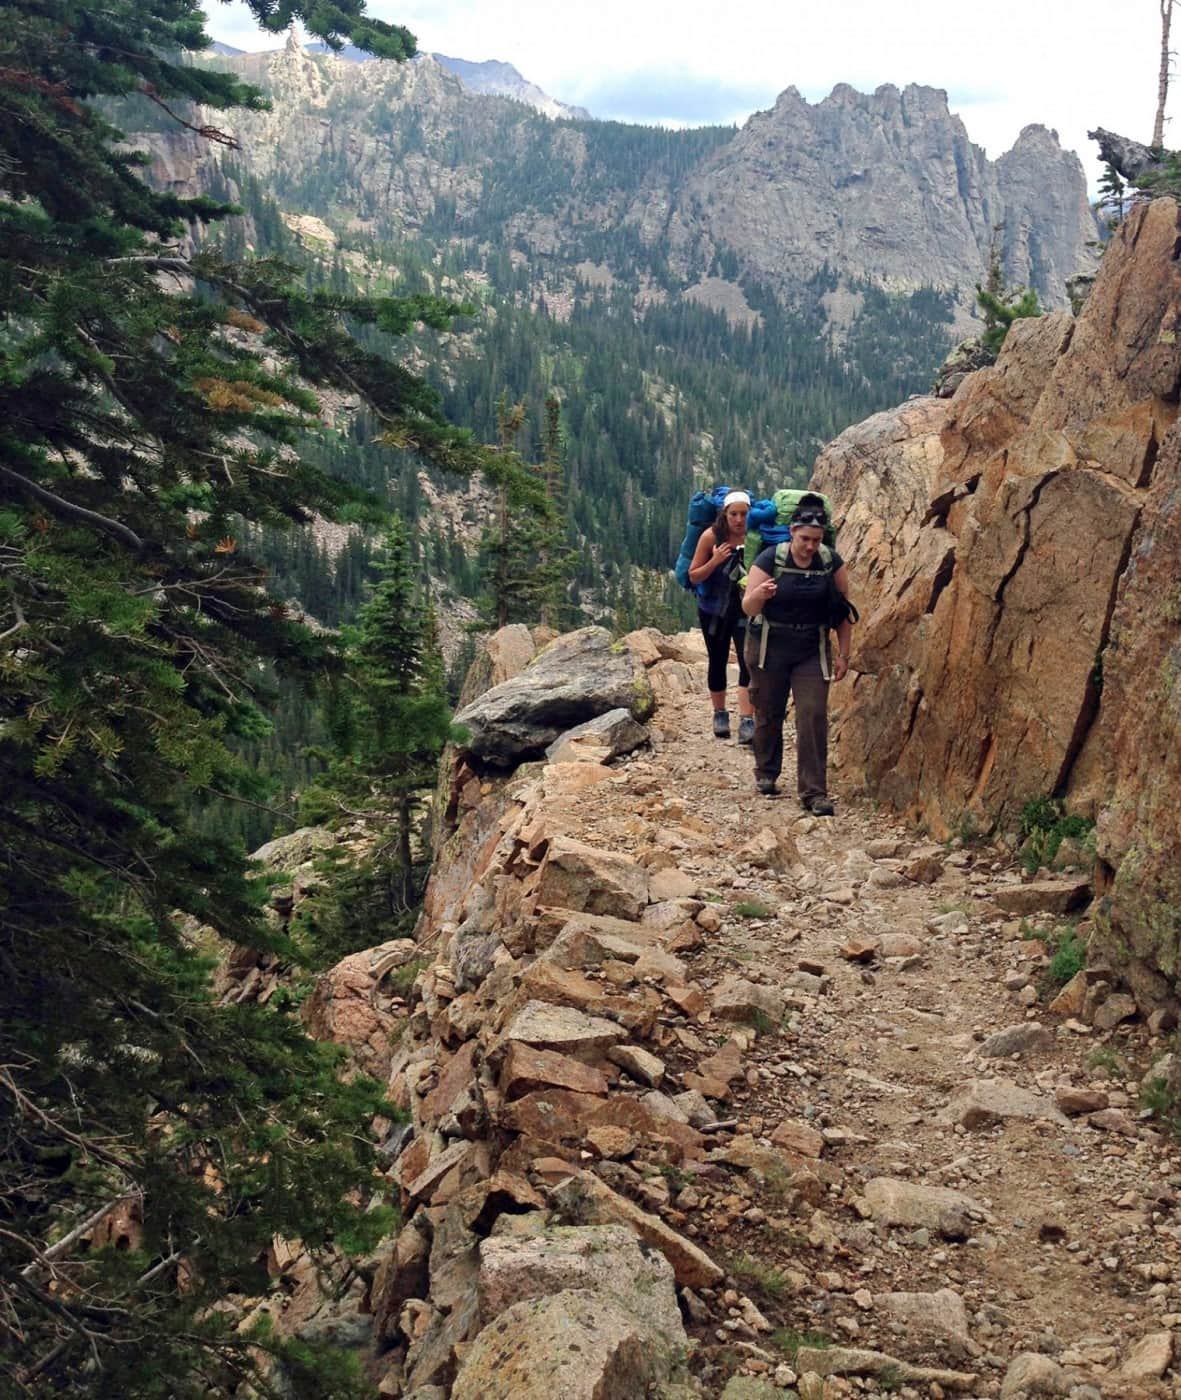 Two women hike with backpacks along a rocky trail